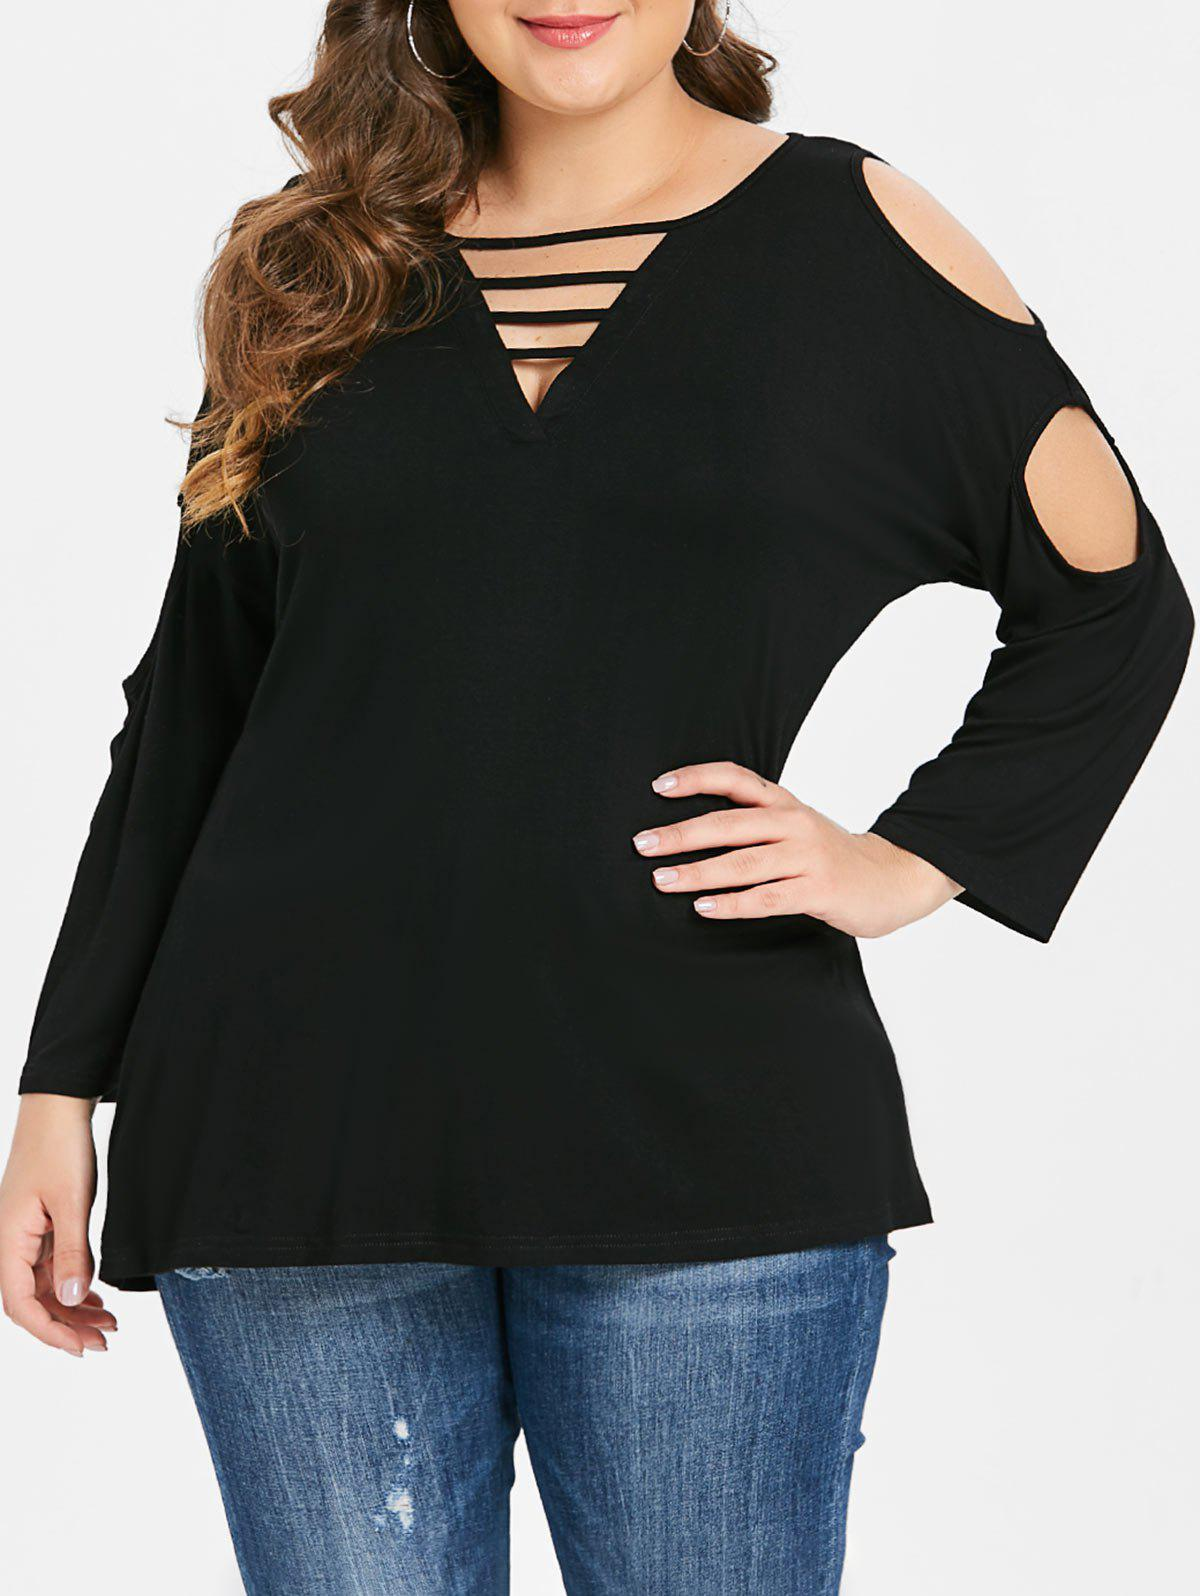 Cut Out Sleeve Plus Size V Neck T-shirt - BLACK 4X